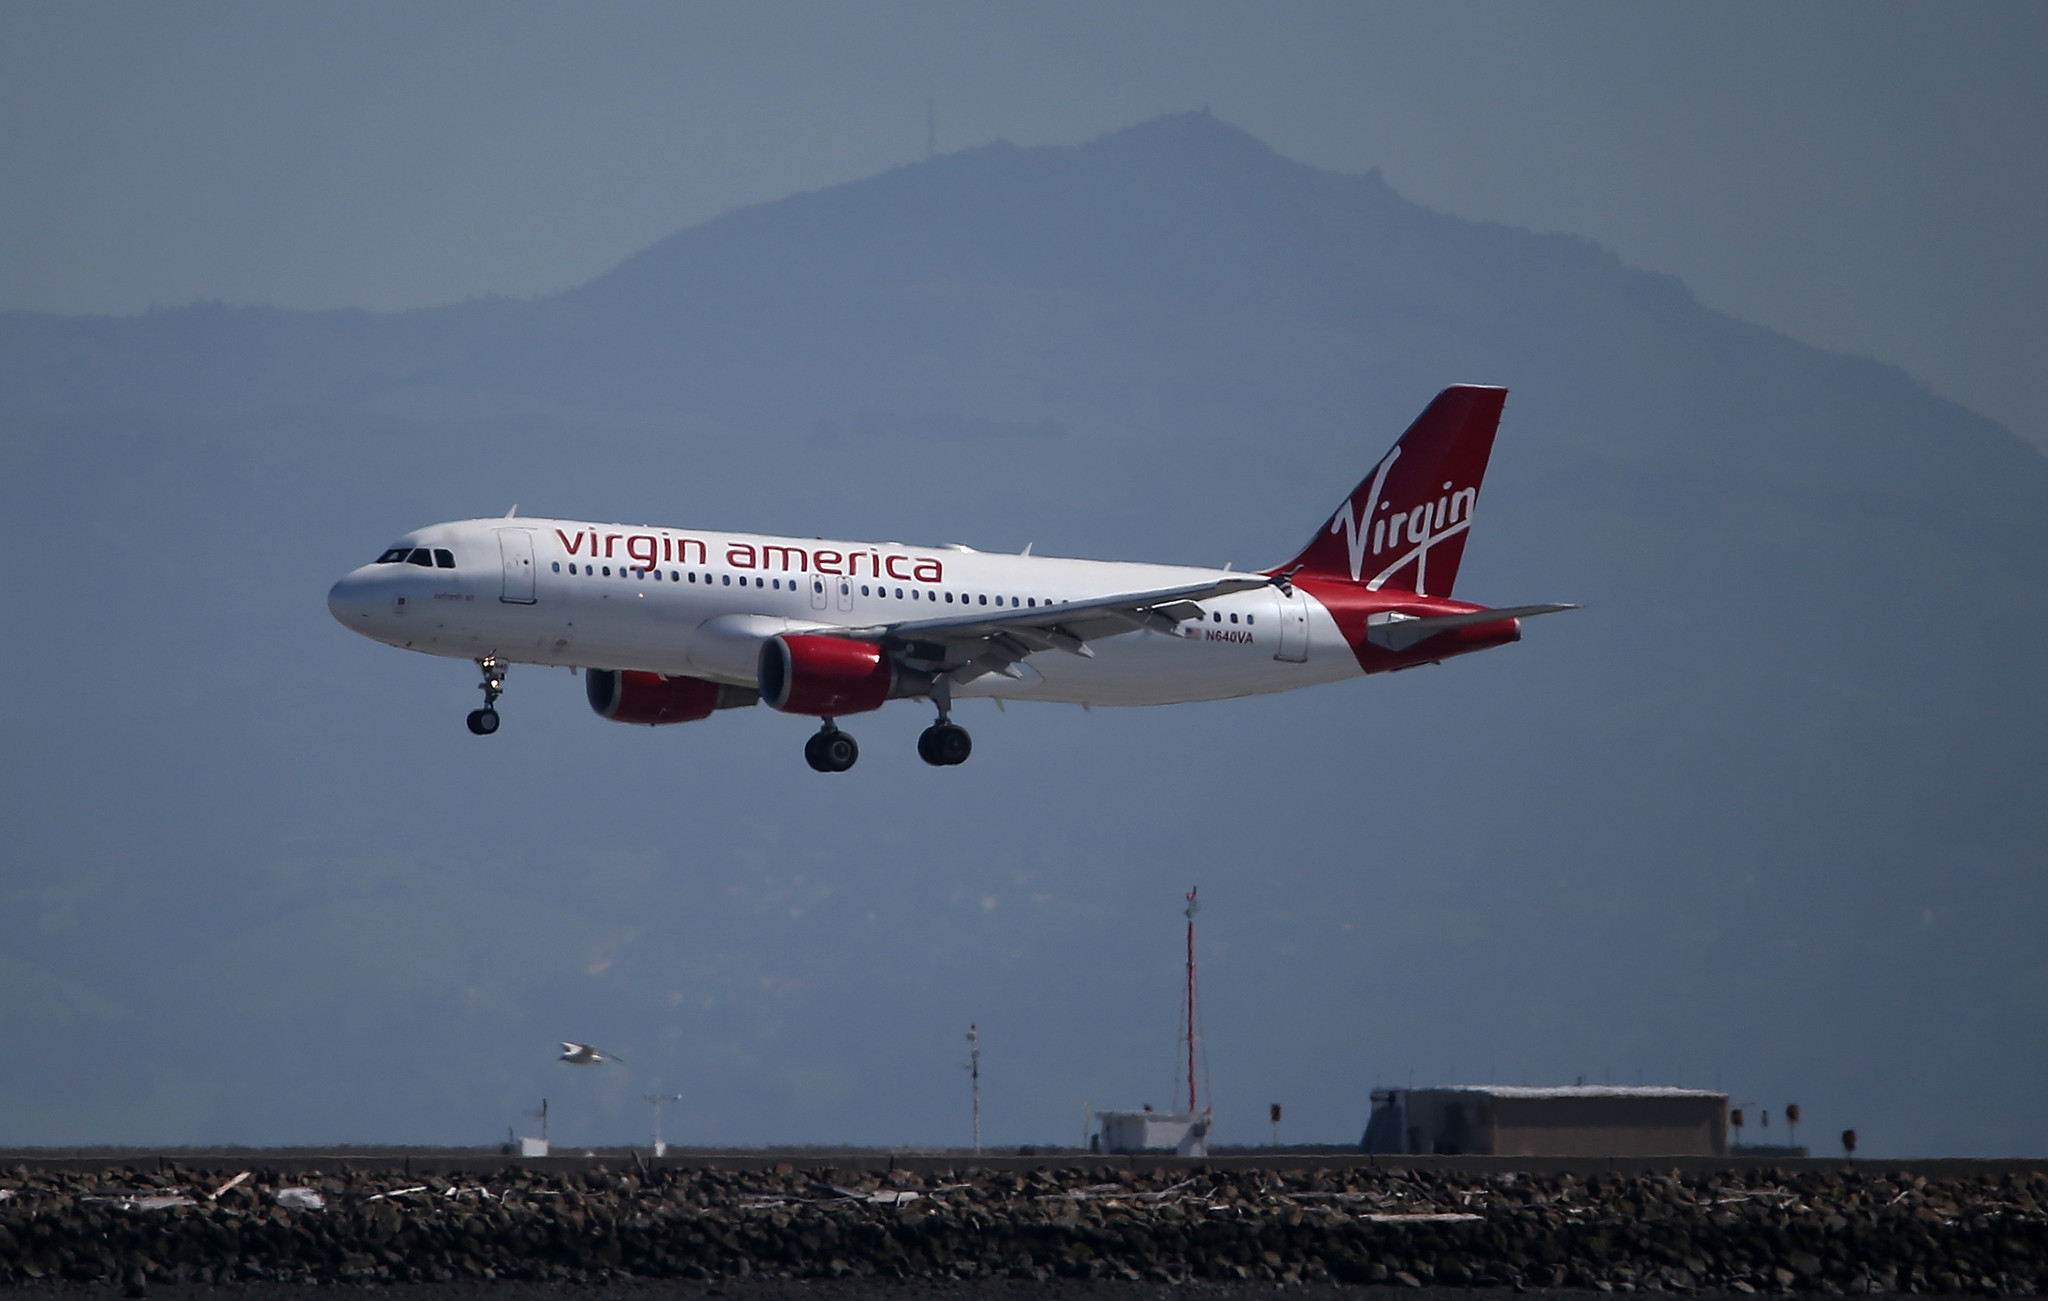 Alaska Air is buying Virgin America in a deal worth more than $2 billion